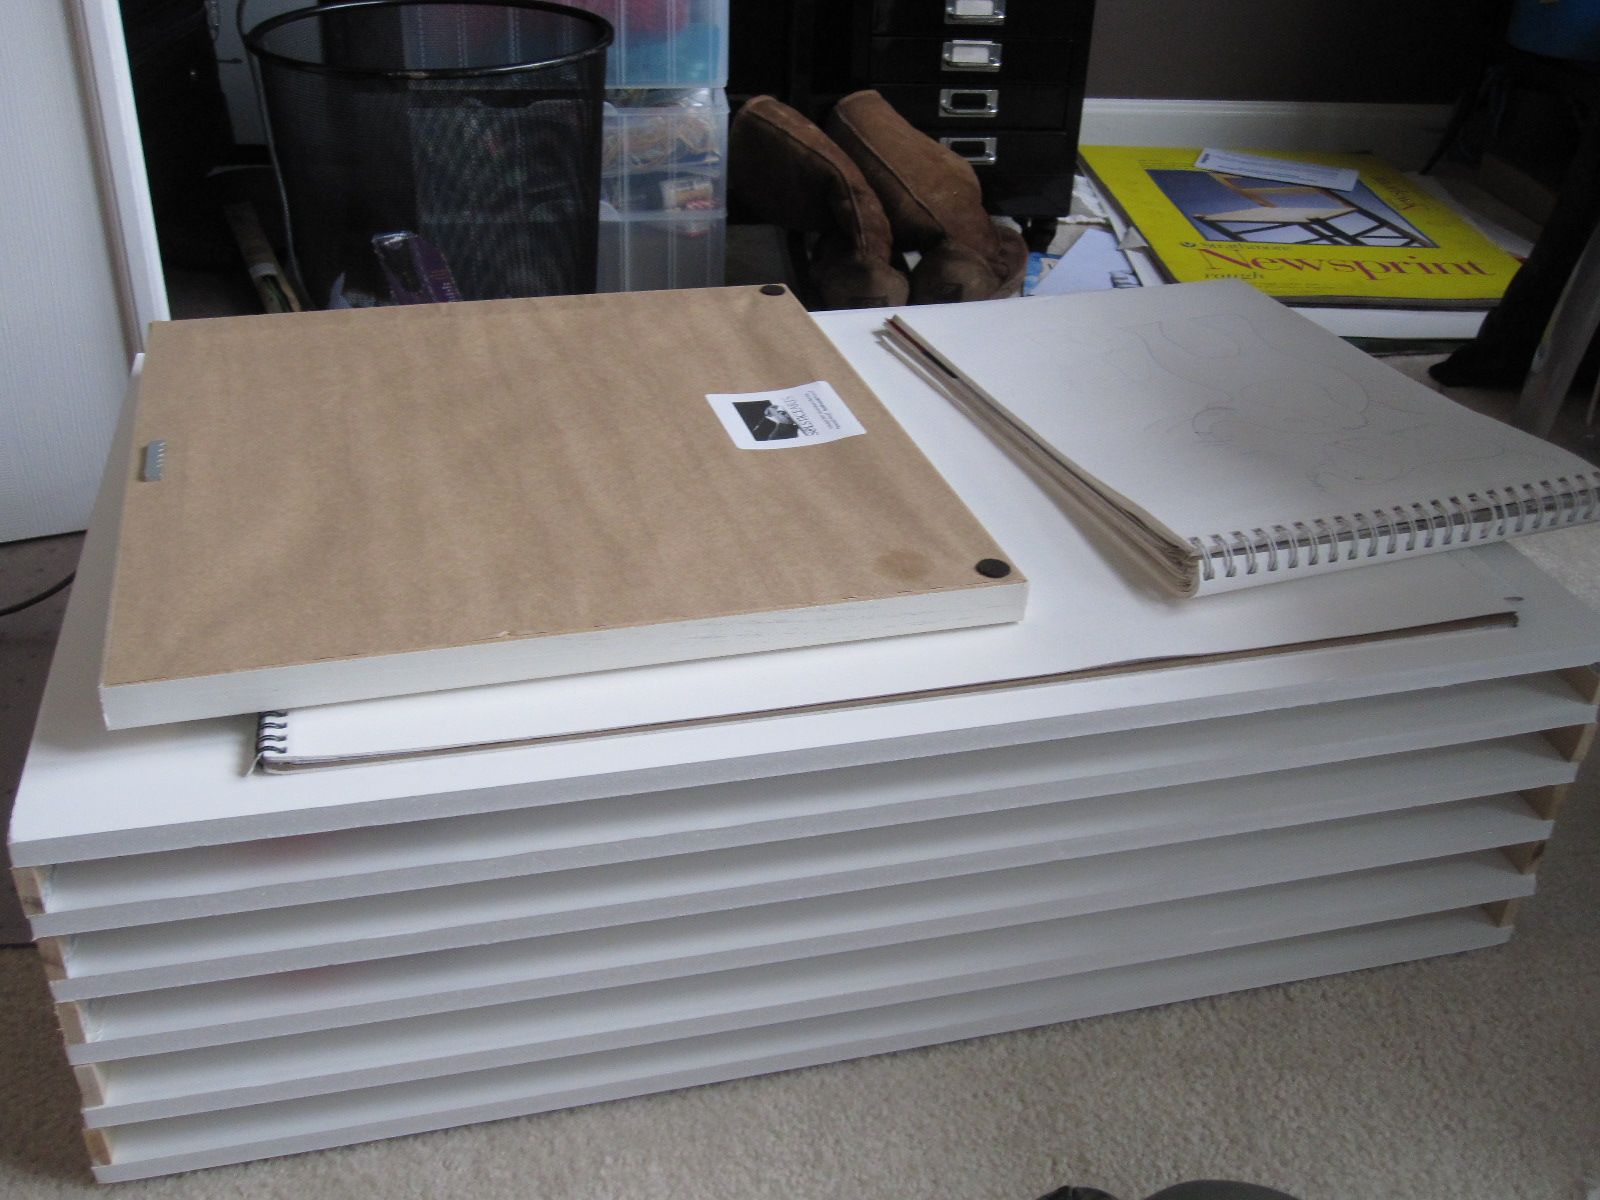 Diy Flat File Made Out Of Foam Core Not Sure If This Is The Longest Lasting Option But Cheap And Archival For Th Flat Files Flat File Cabinet Filing Cabinet